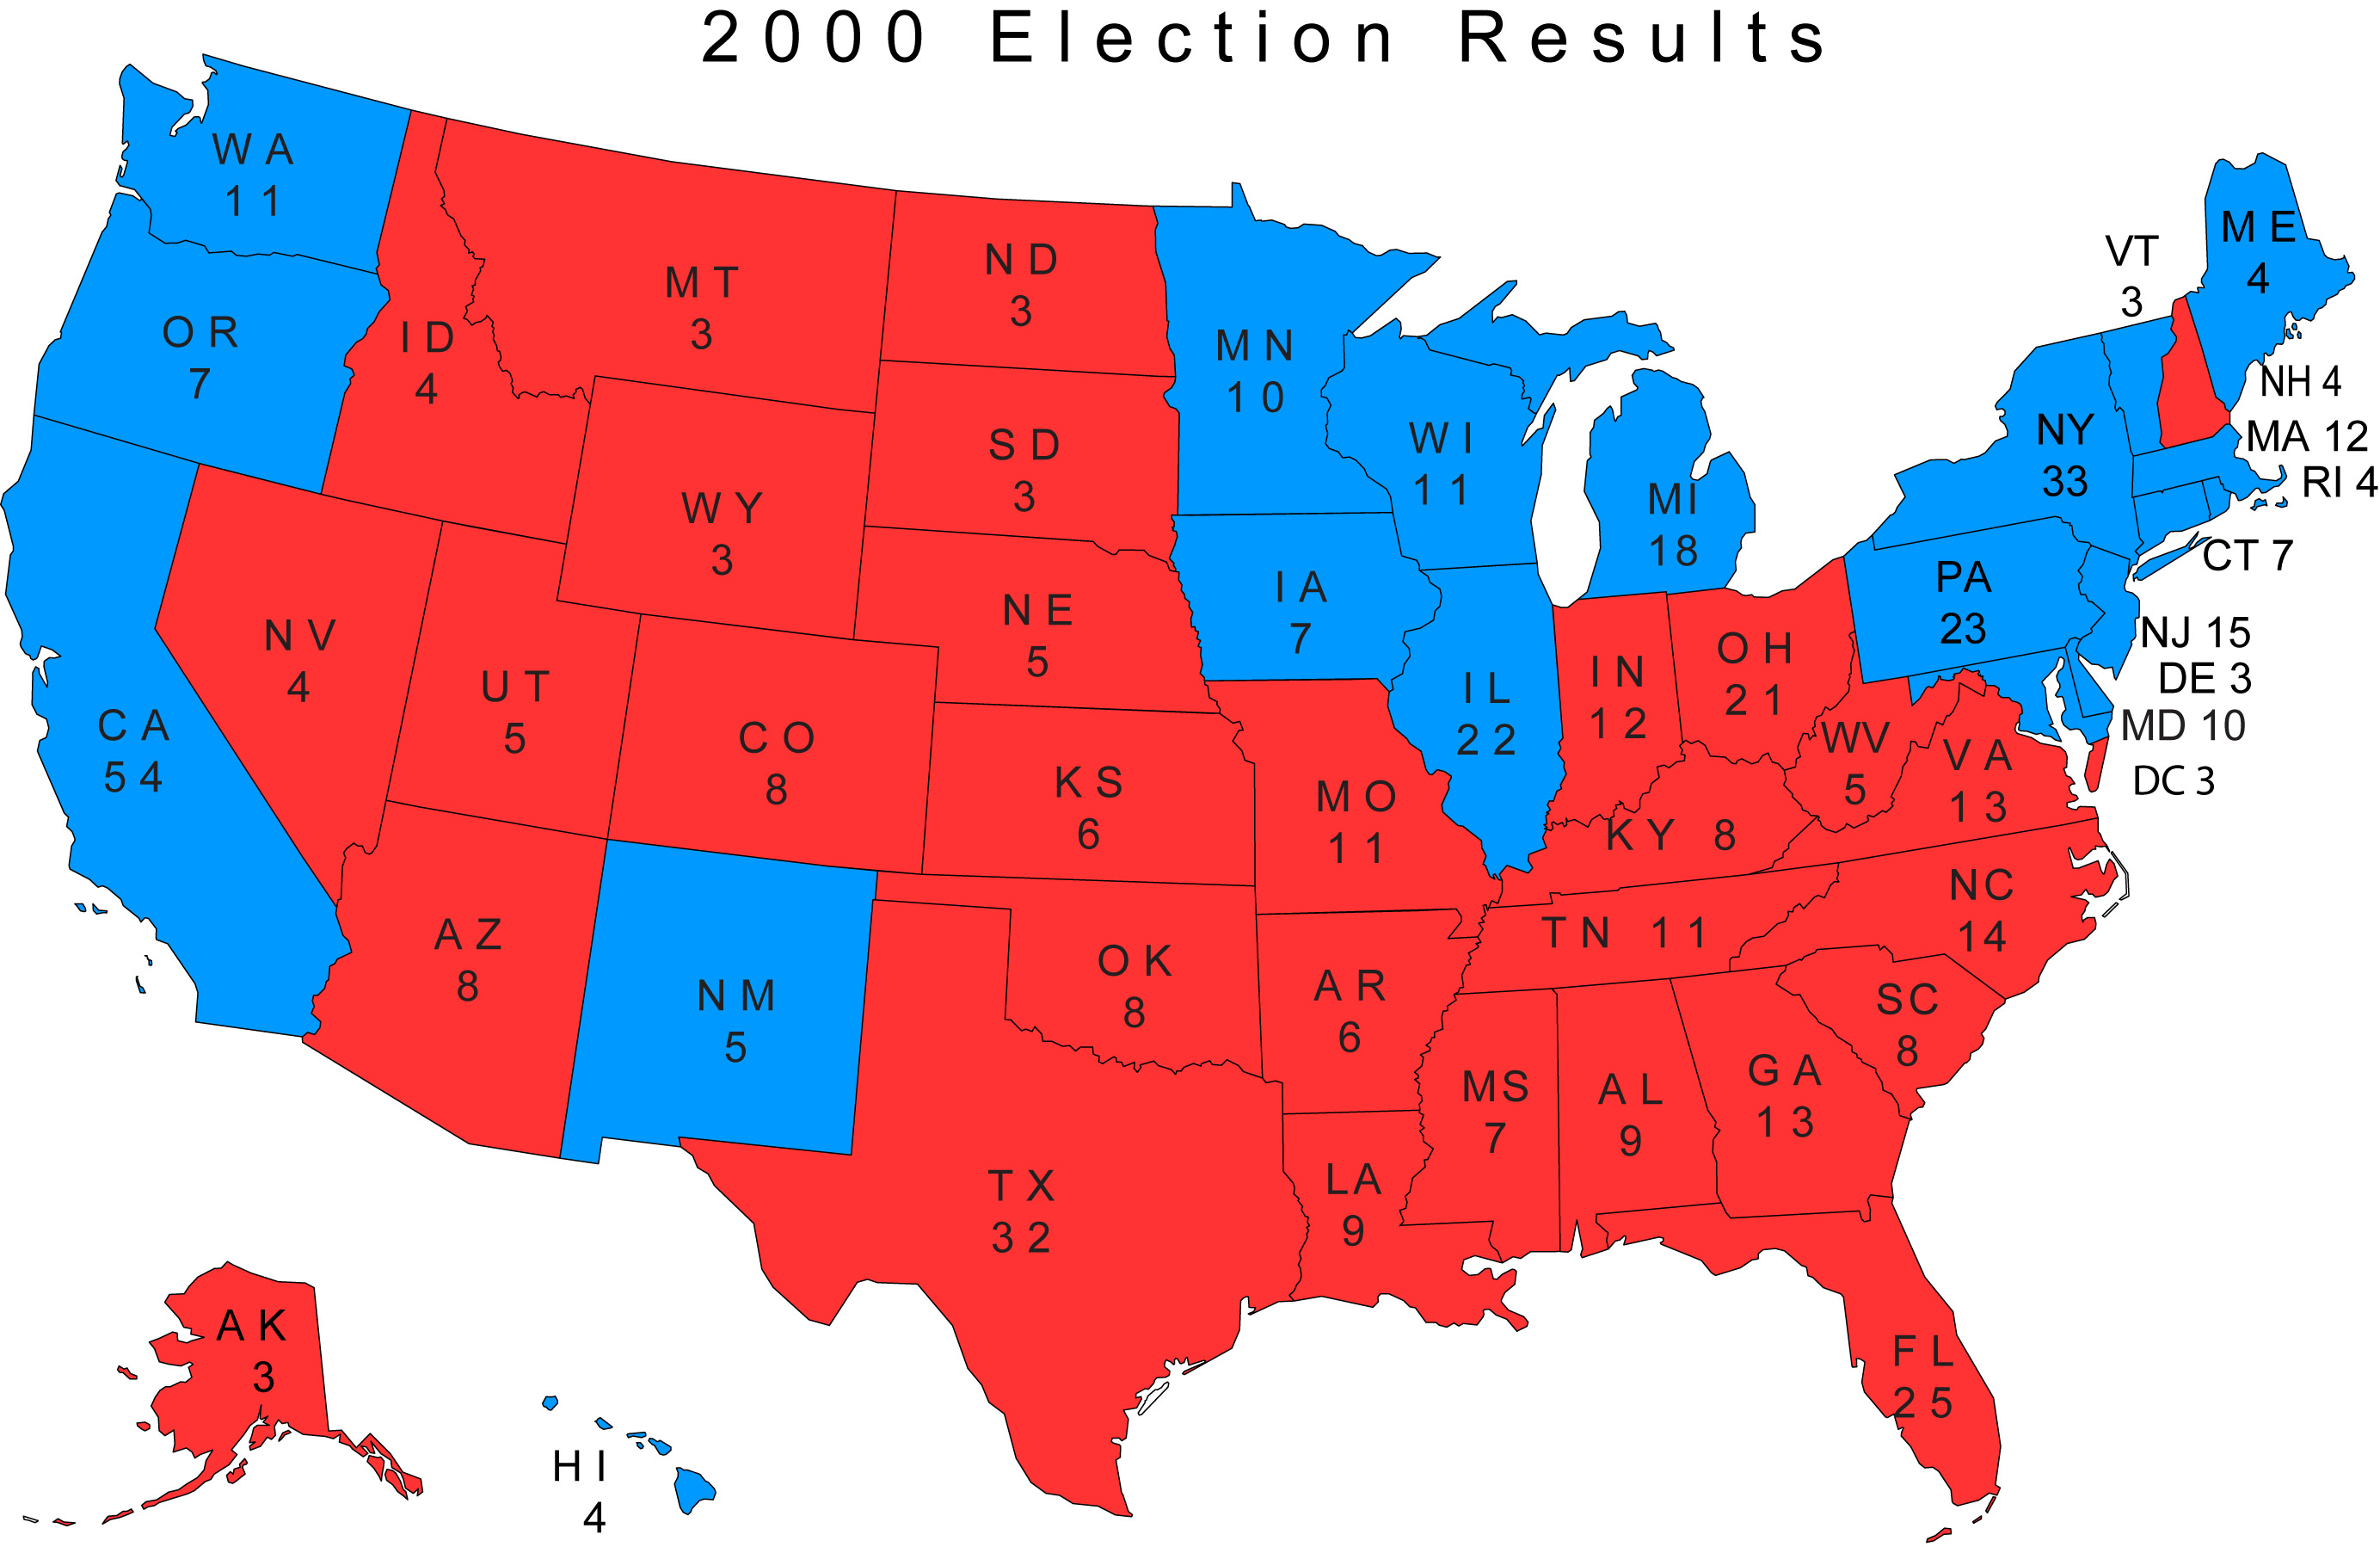 2000 election results